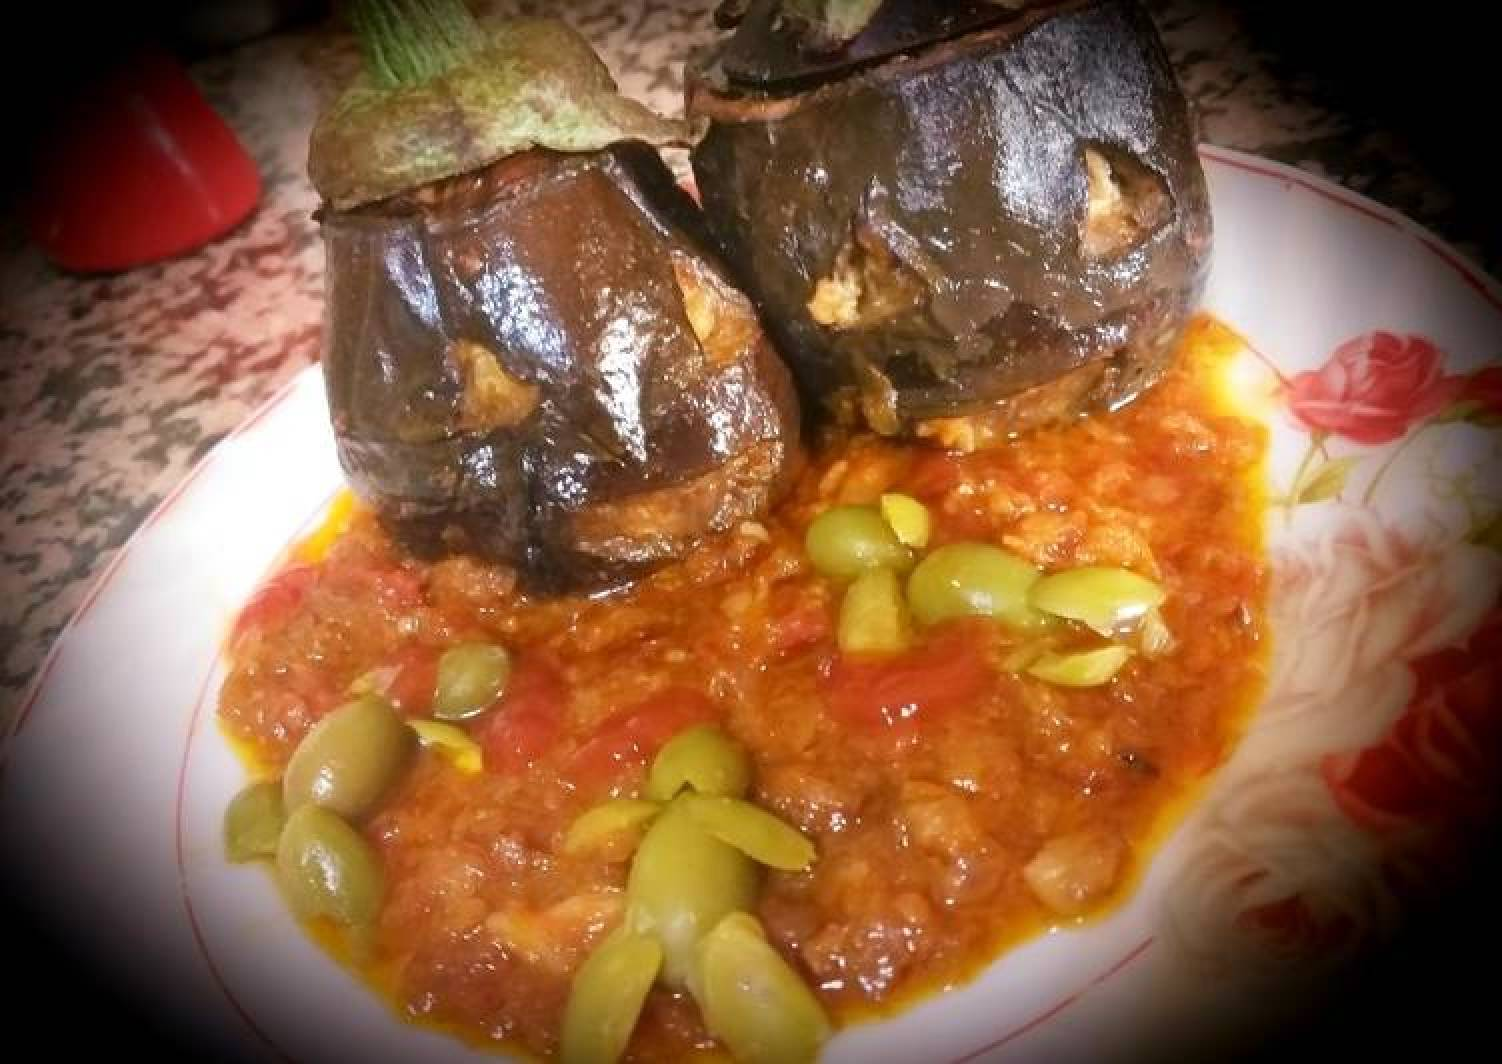 Eggplant stuffed with minced meat and cheese